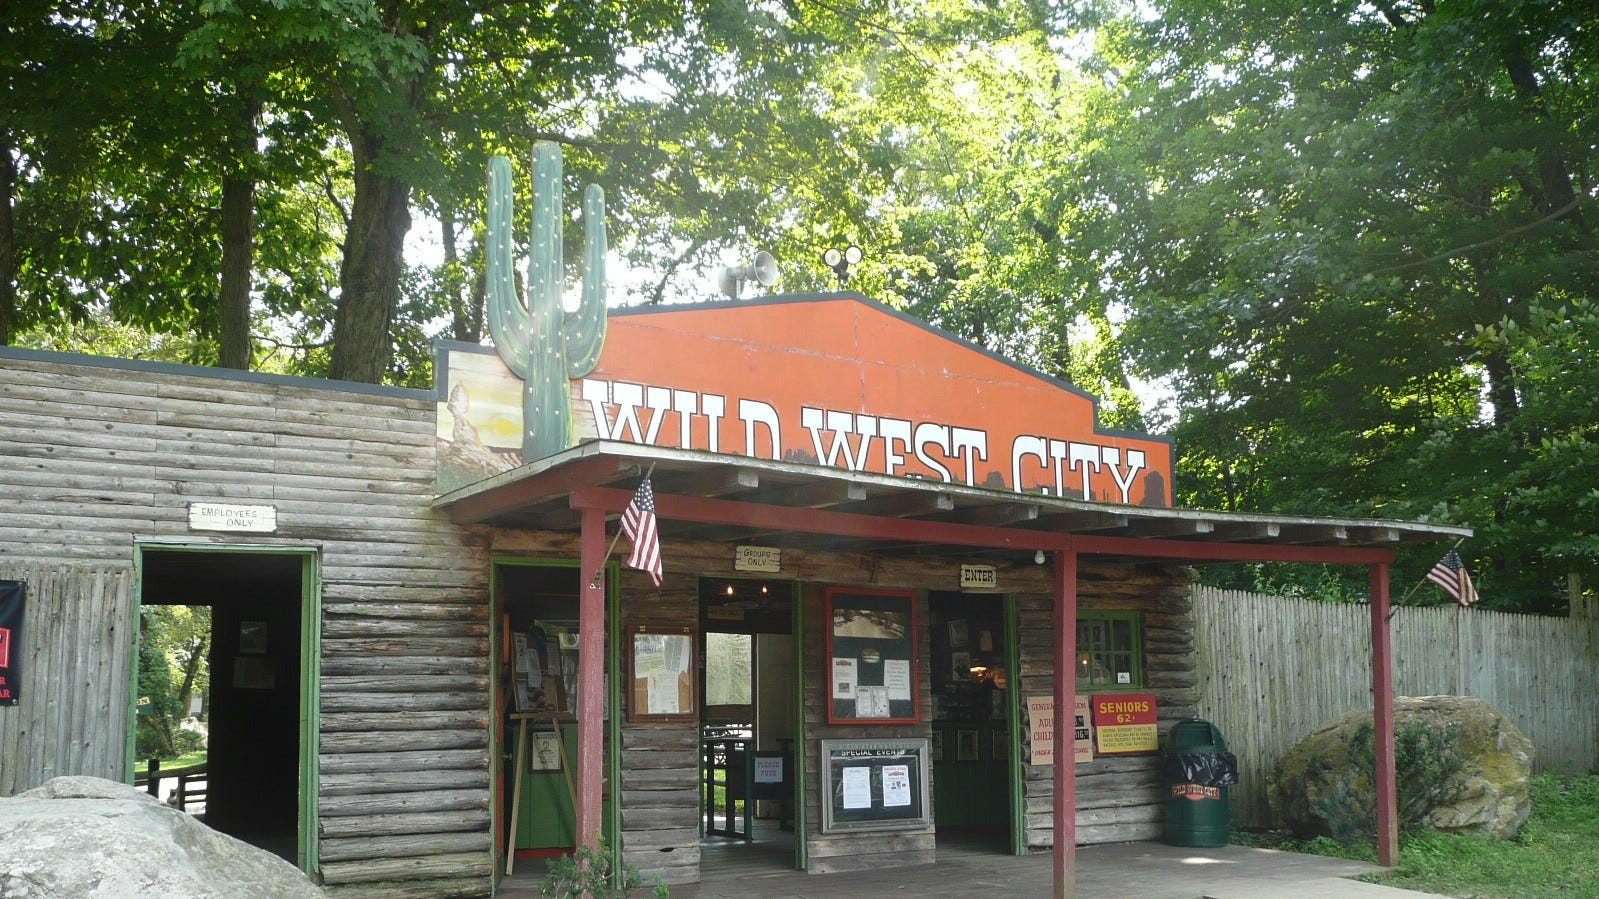 The entrance to Byram, N.J. theme park Wild West City basks in the afternoon sun on Aug. 15, 2018.